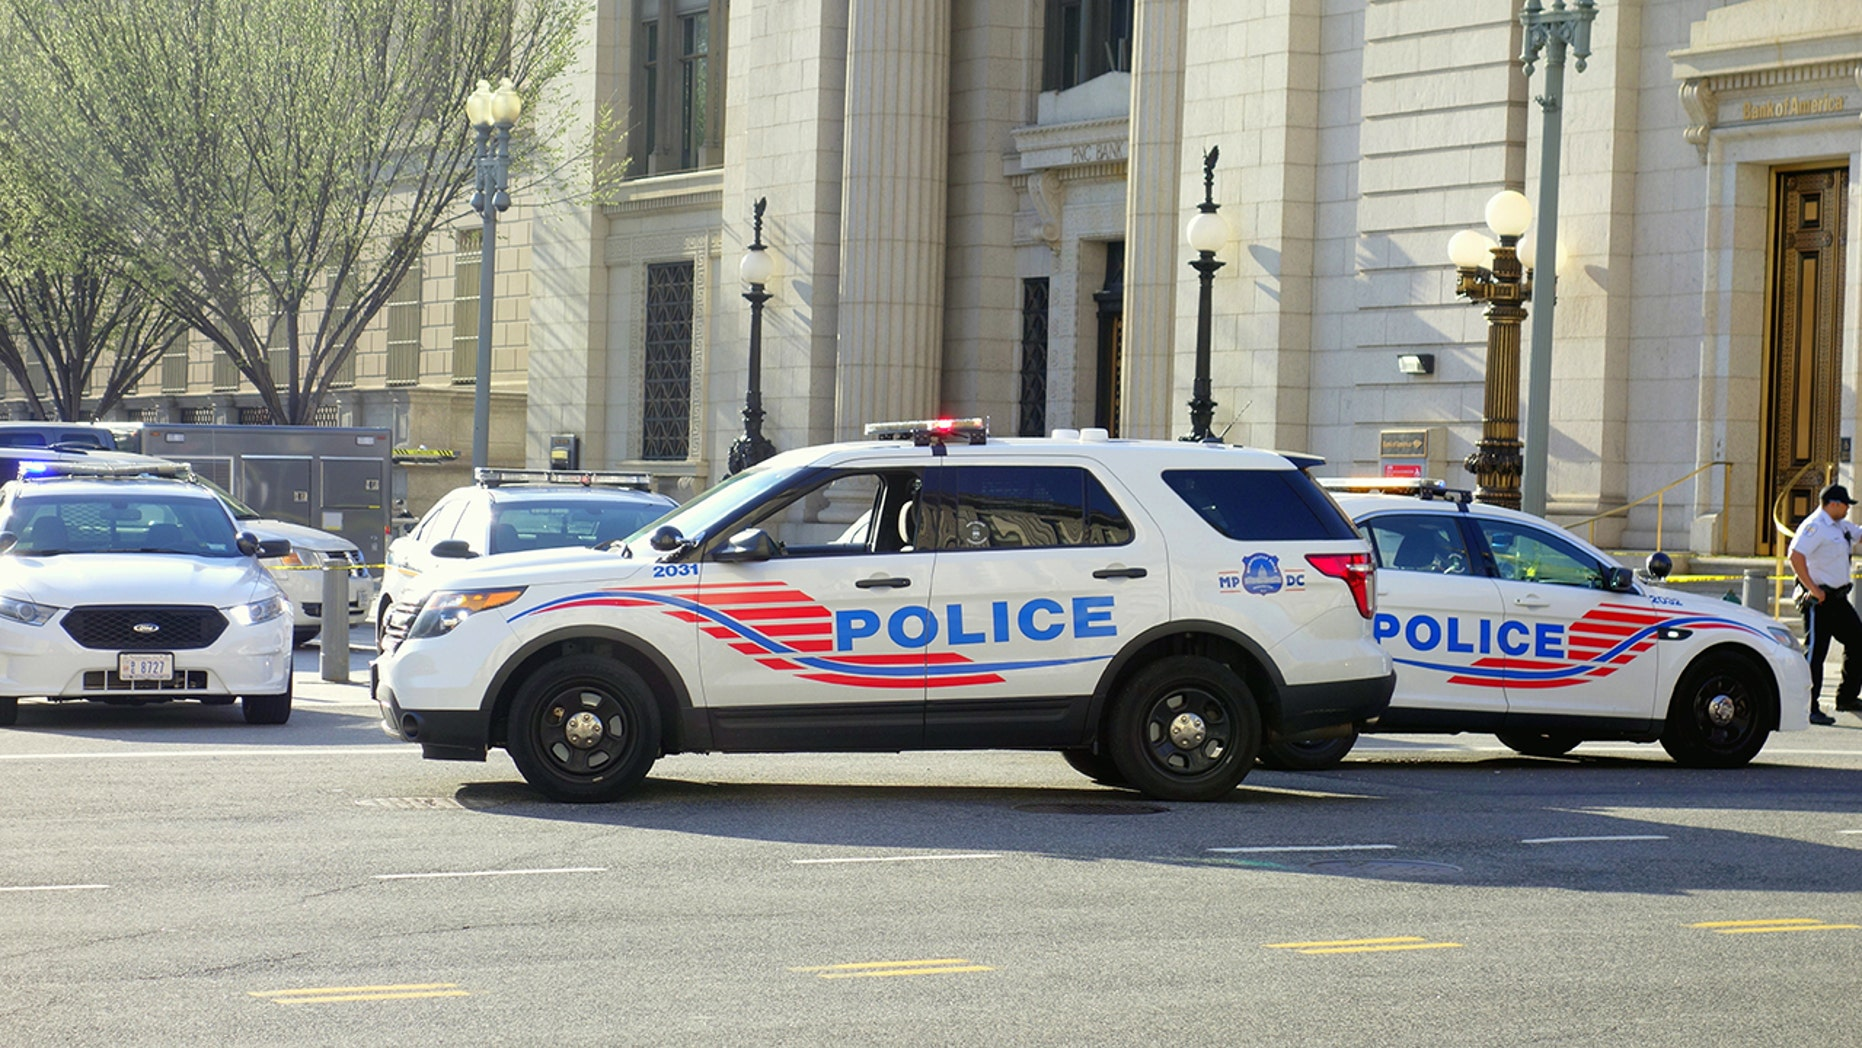 Metropolitan police in Washington, D.C. said a woman was reportedly doused with gasoline and set on fire while trying to break up a fight.